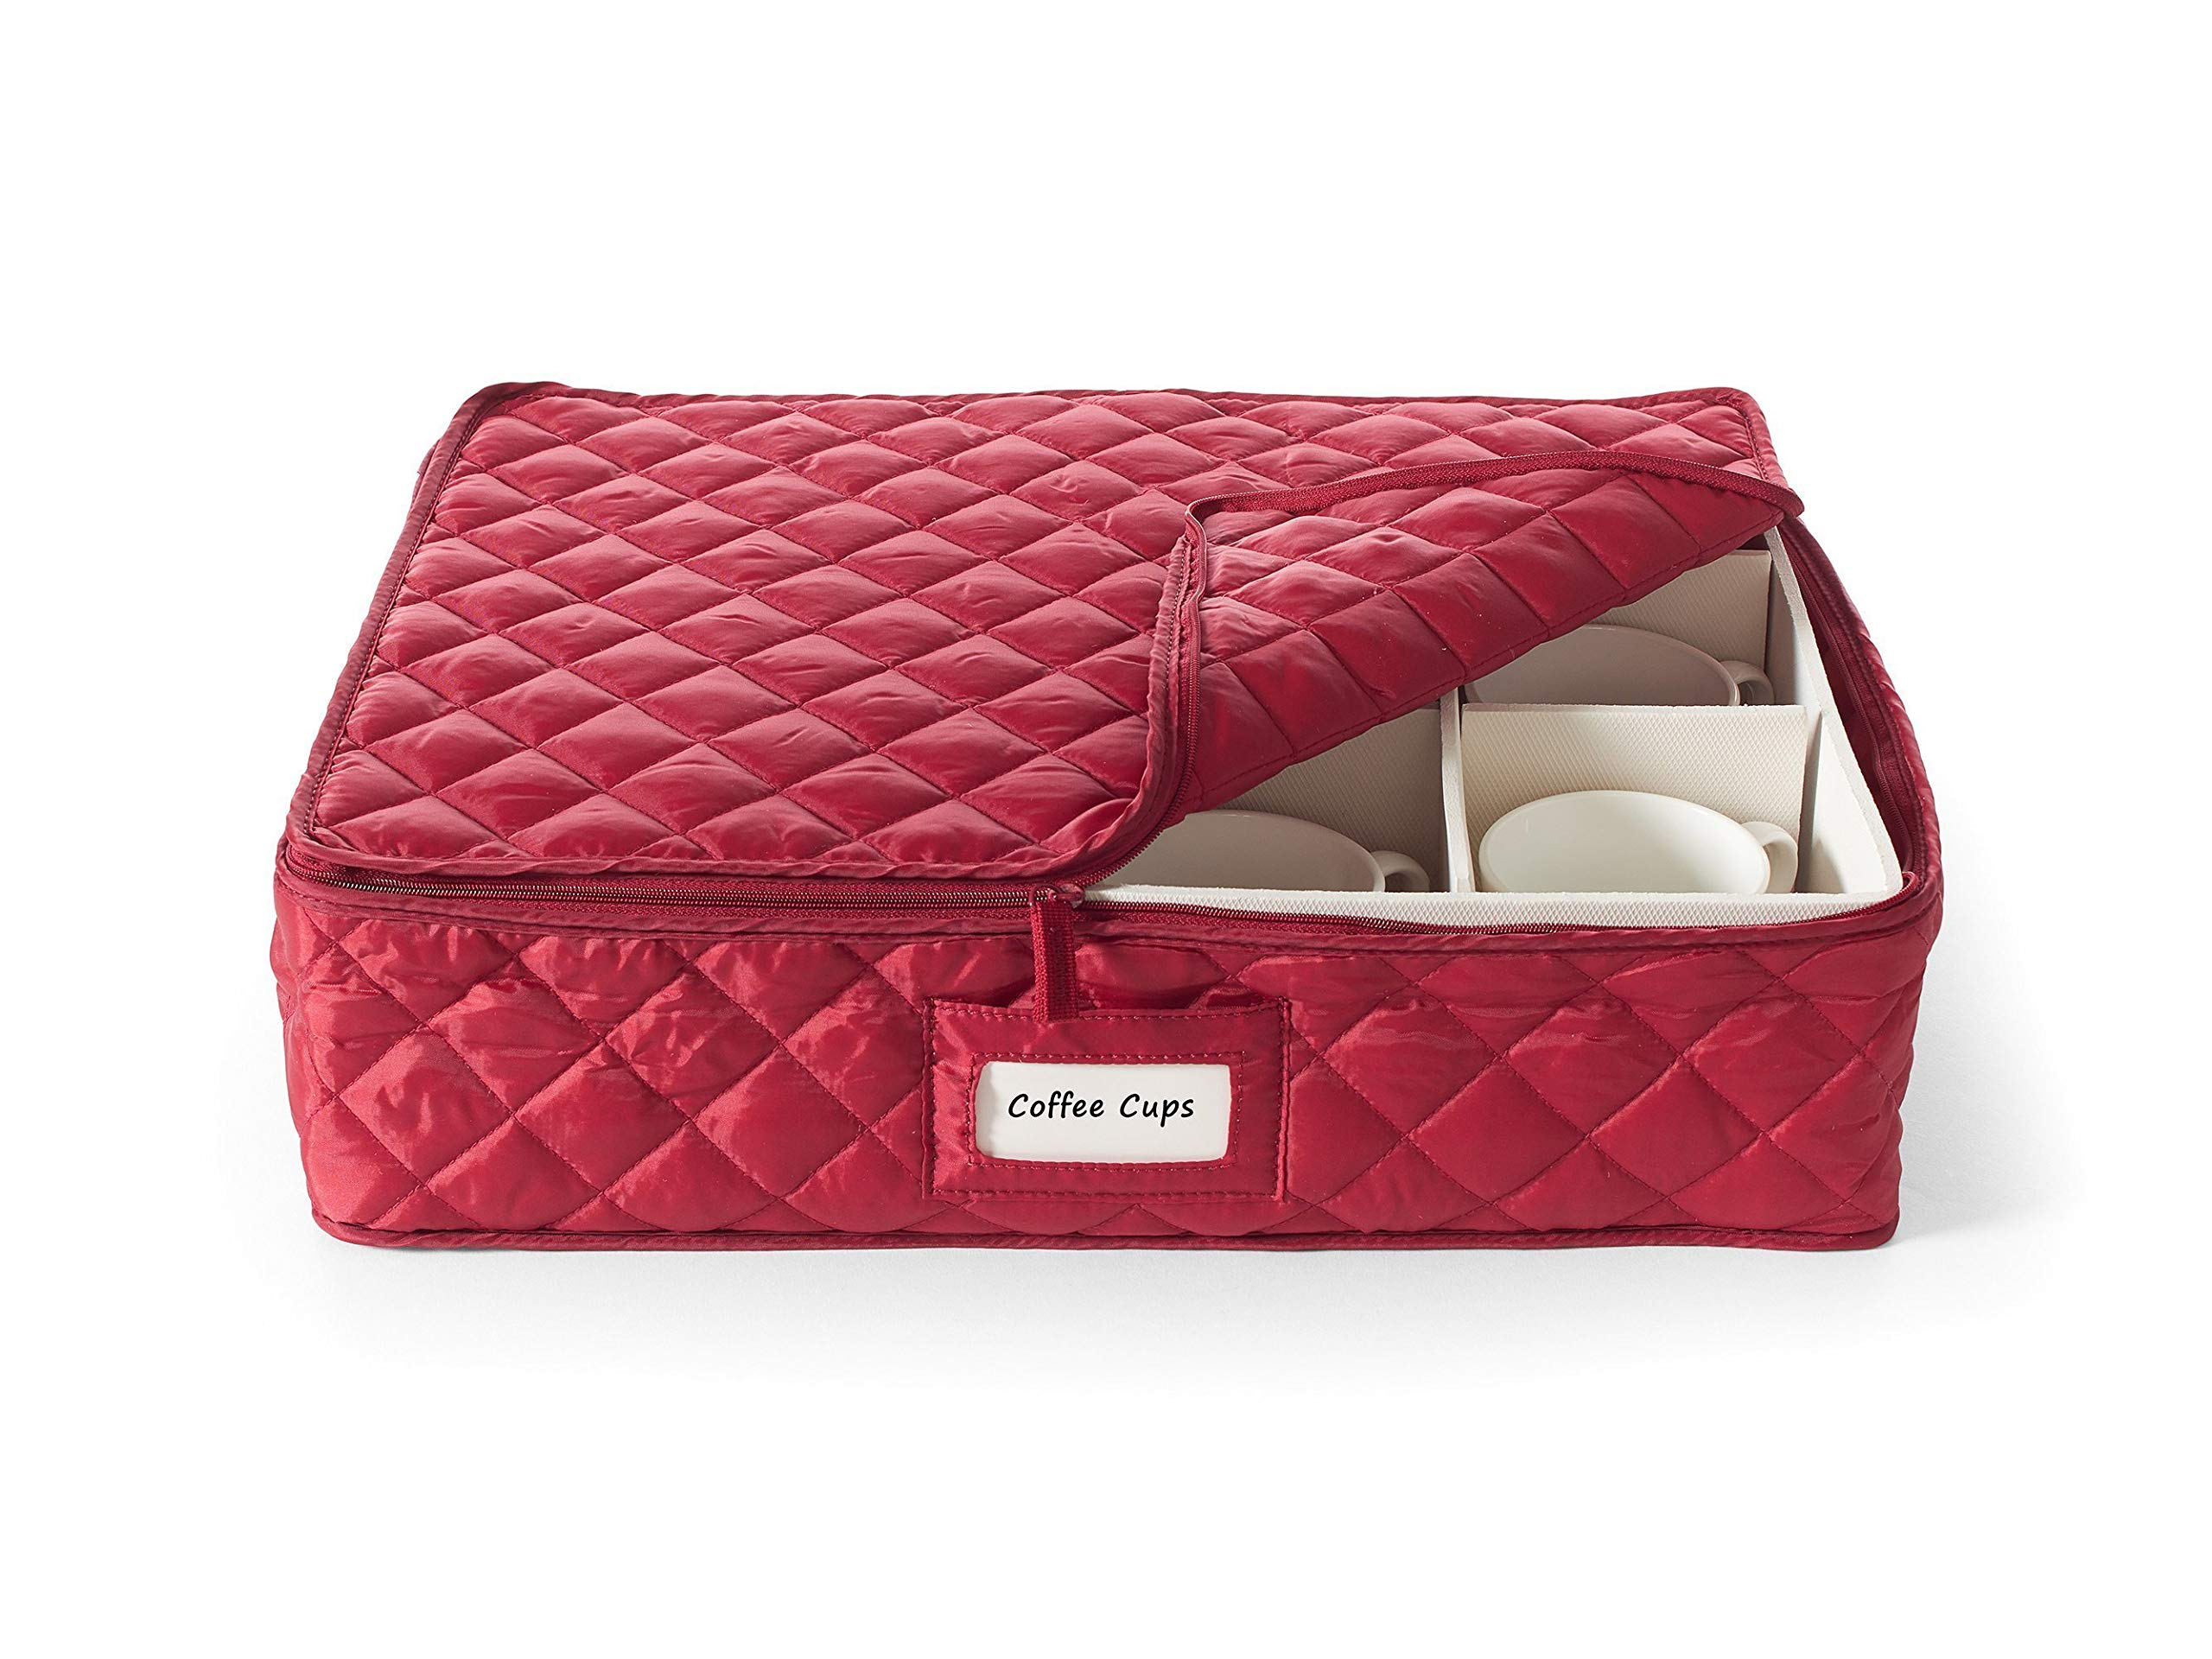 Covermates - China Cups and Coffee Mugs Storage 17L x 13W x 5H - Diamond Collection - 2 YR Warranty - Year Around Protection - Red by Covermates